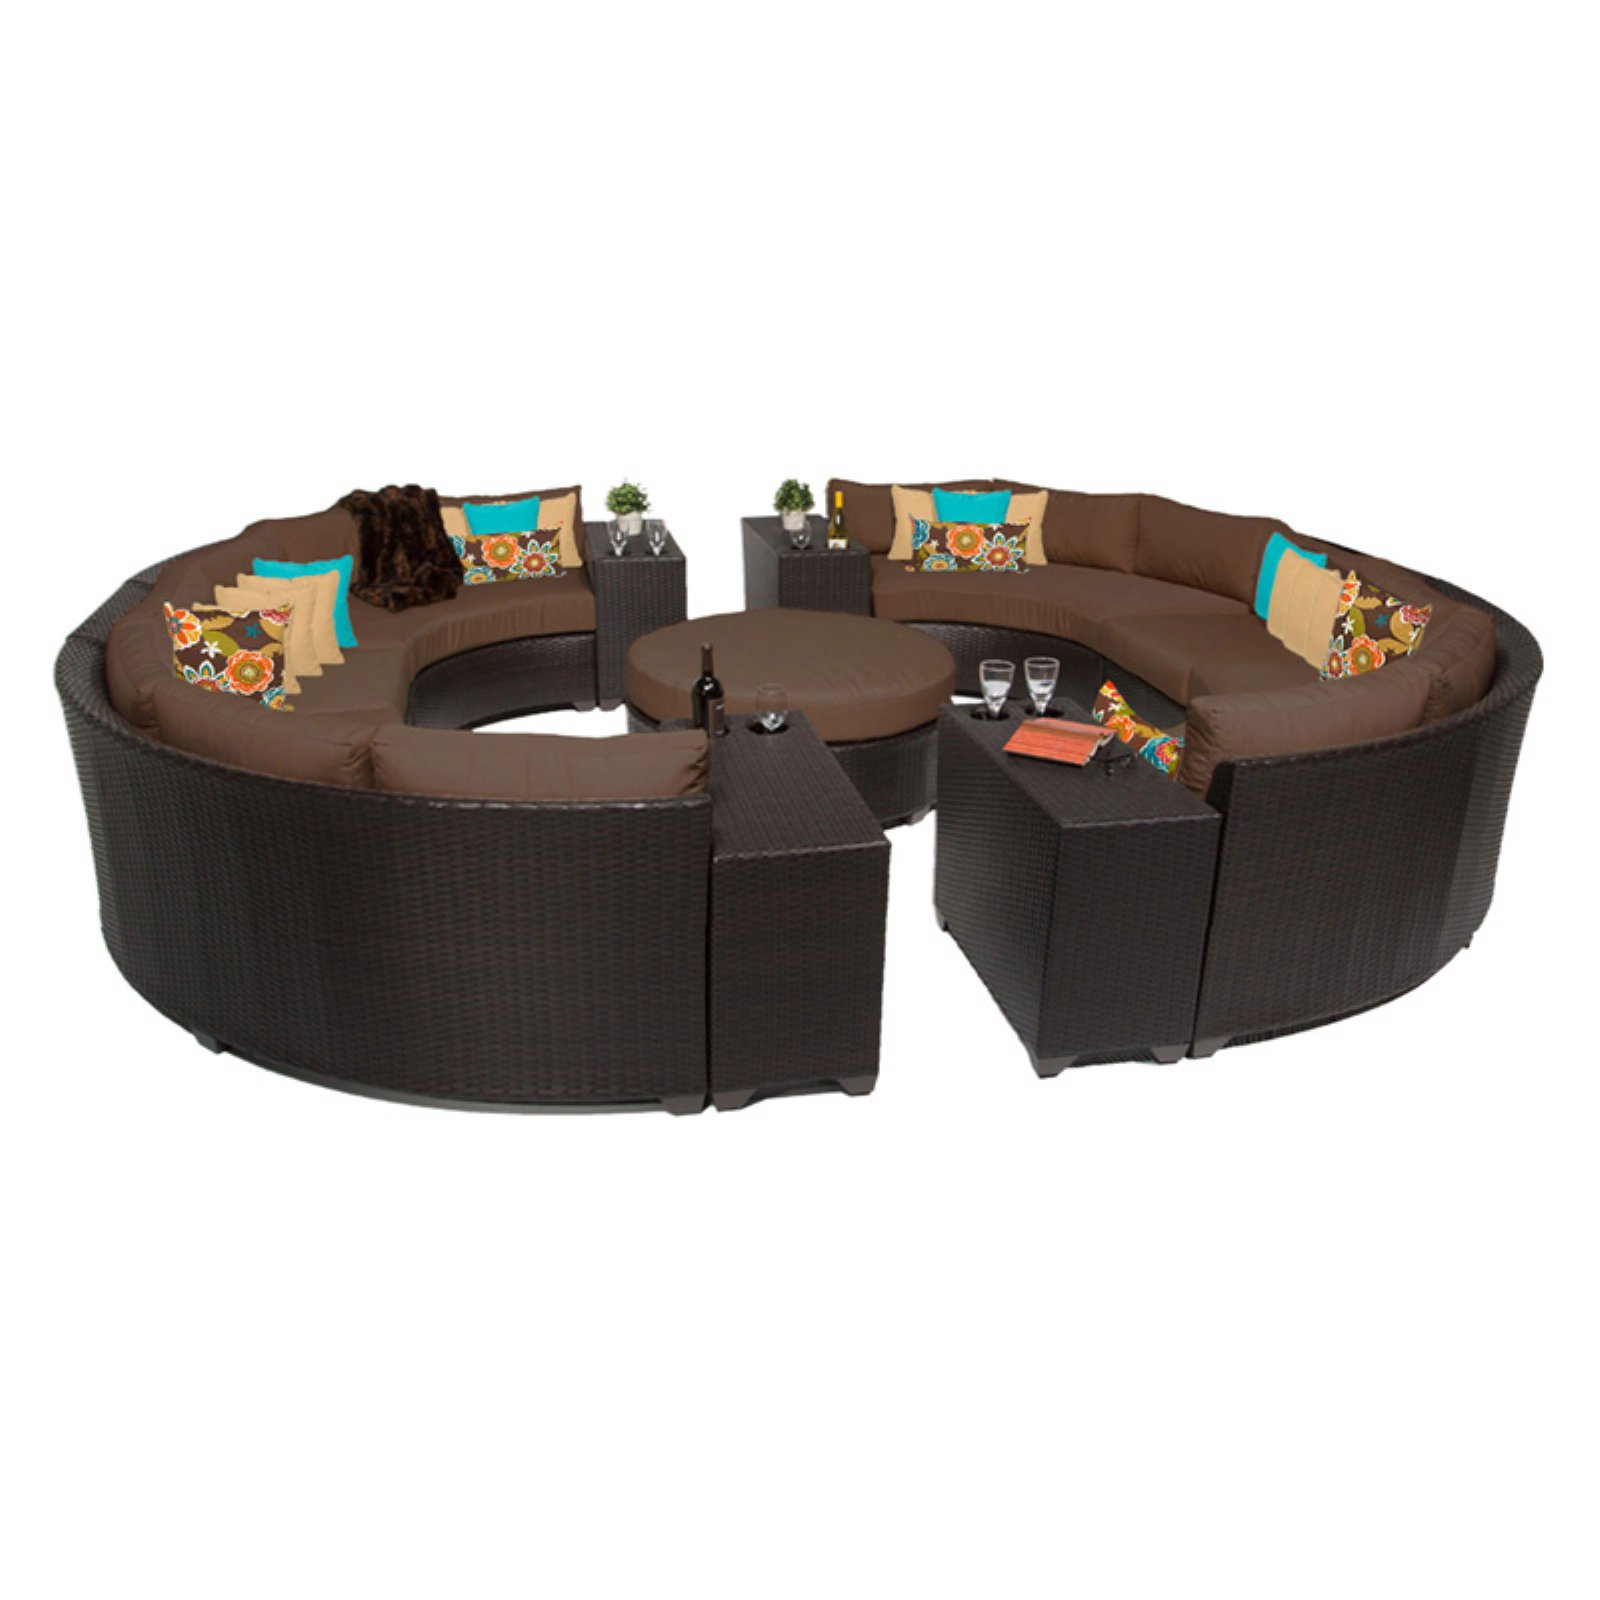 TK Classics Barbados Wicker 11 Piece Patio Conversation Set with Cup Table with 2 Sets of Cushion Covers by TK Classics